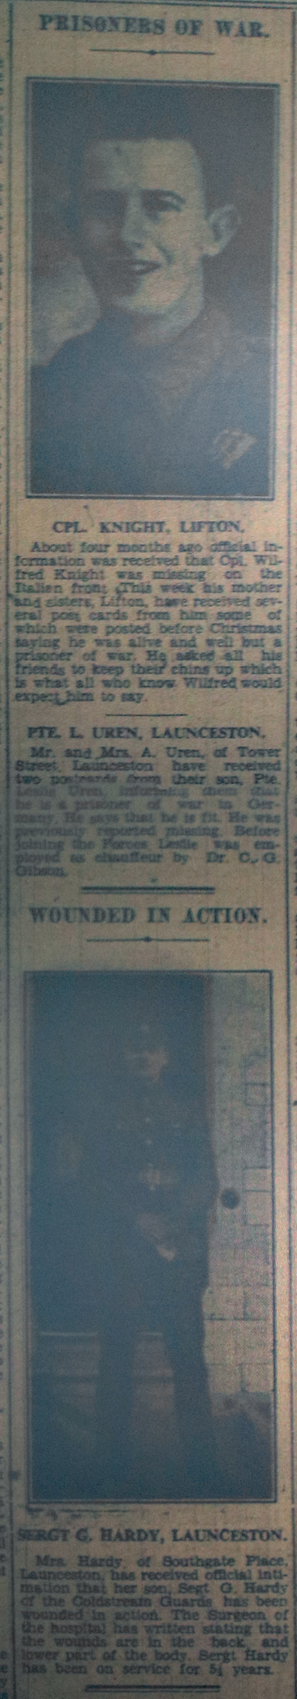 Launceston POW's March 10th, 1944.